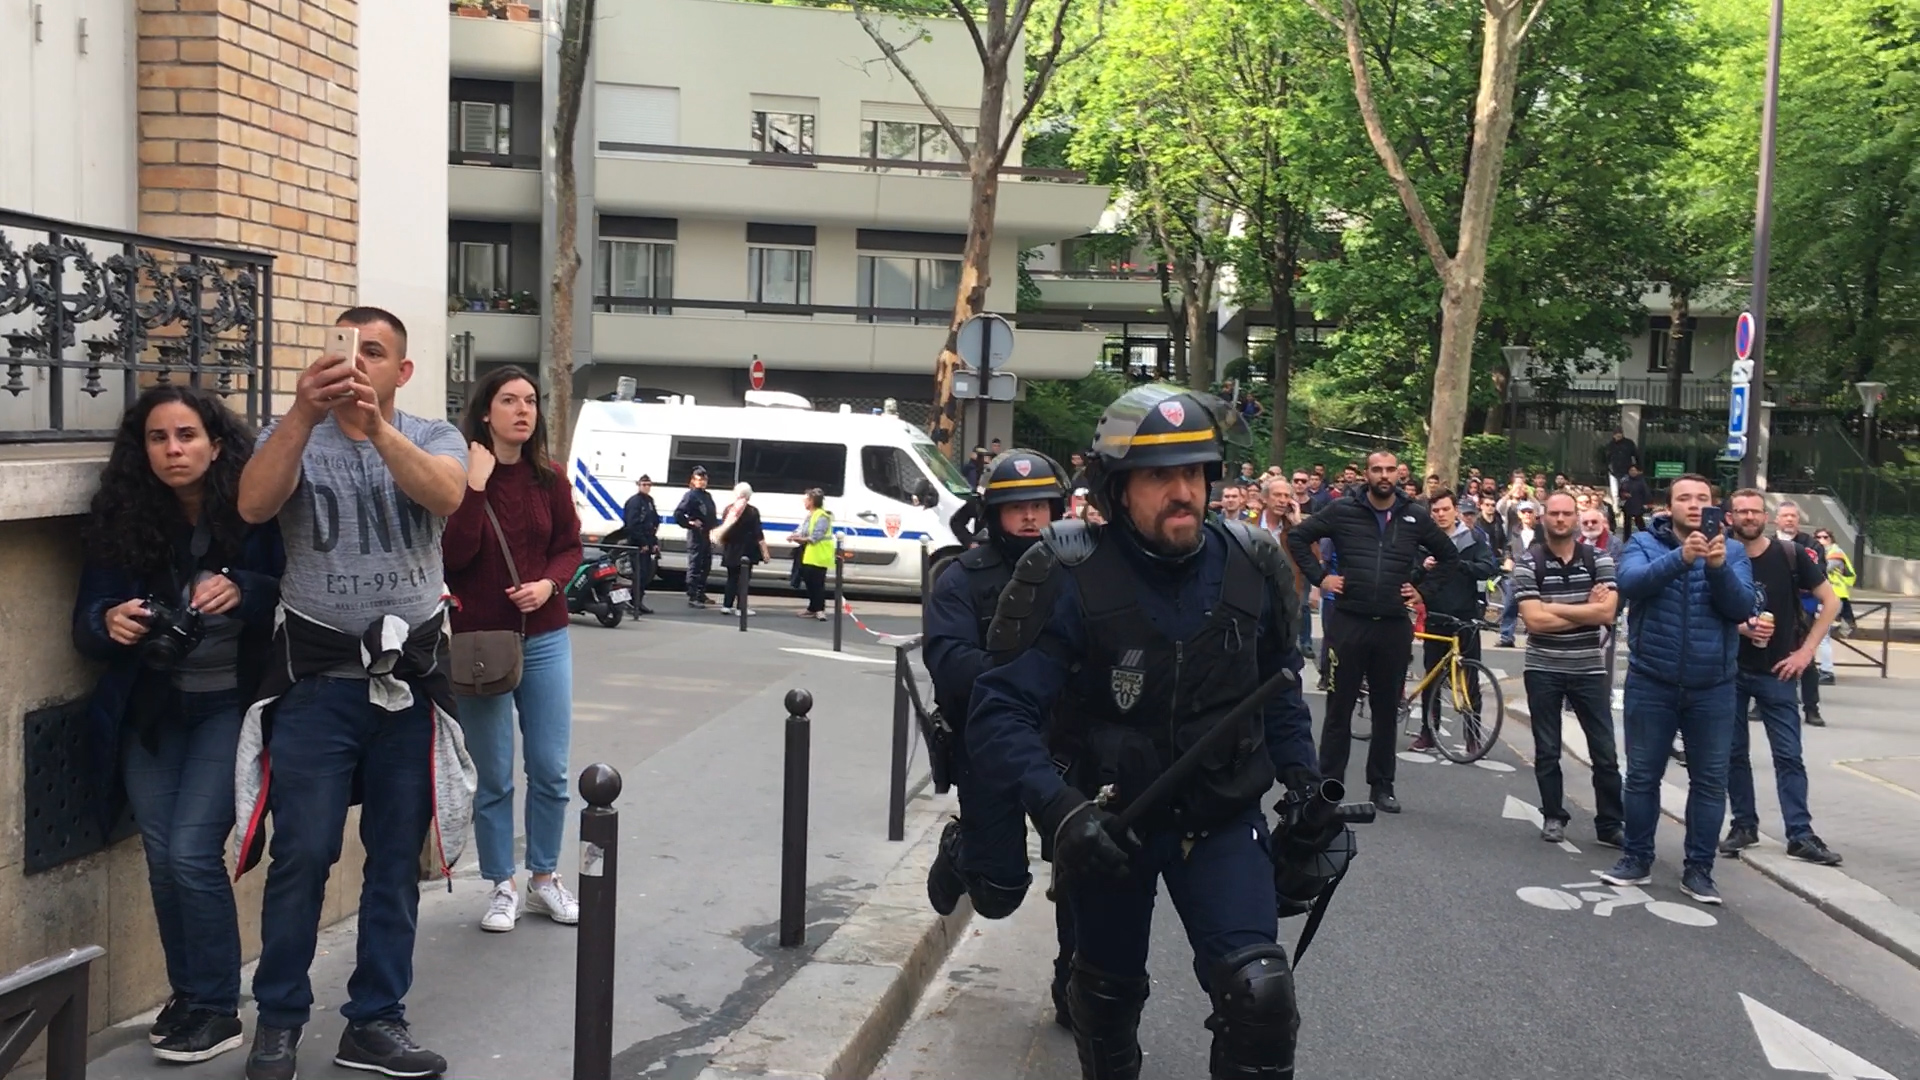 Marie-Hélène films violent May Day protests in Paris - May Day protests in Paris turn into riots as anti-government demonstrators clash with the police. French police fired tear gas into the crowds while protestors threw rocks and broke windows.